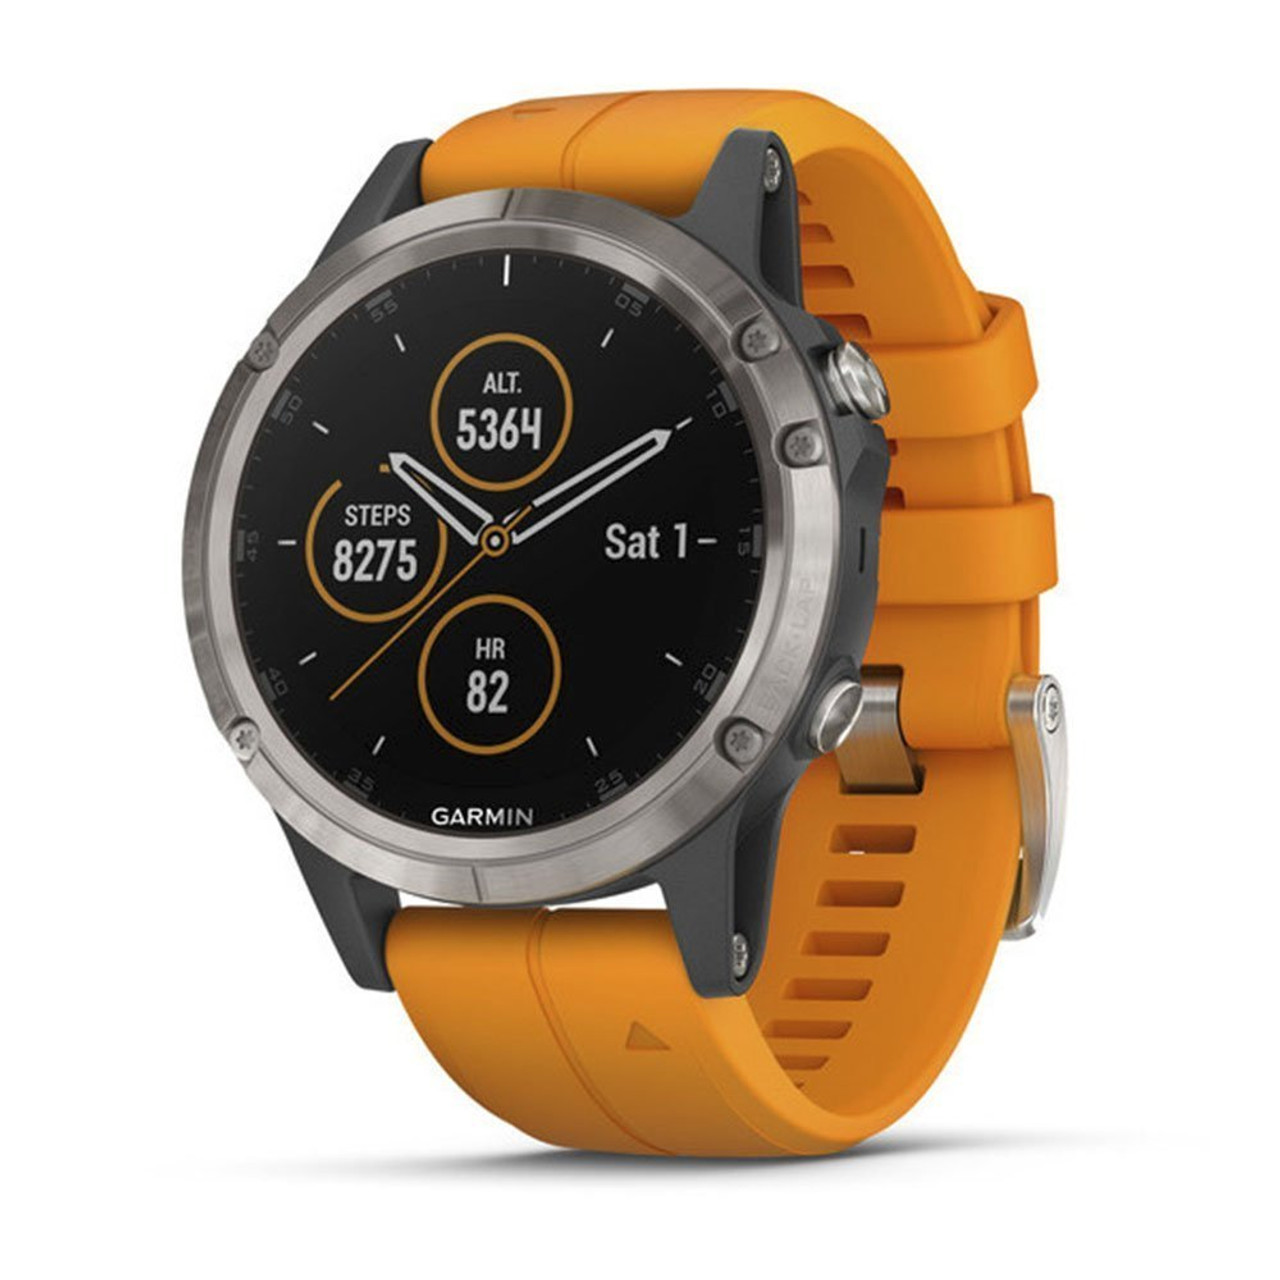 Garmin Fenix 5 Plus, Premium Multisport GPS Smartwatch, Features Color TOPO  Maps, Heart Rate Monitoring, Music and Garmin Pay, Titanium/Orange